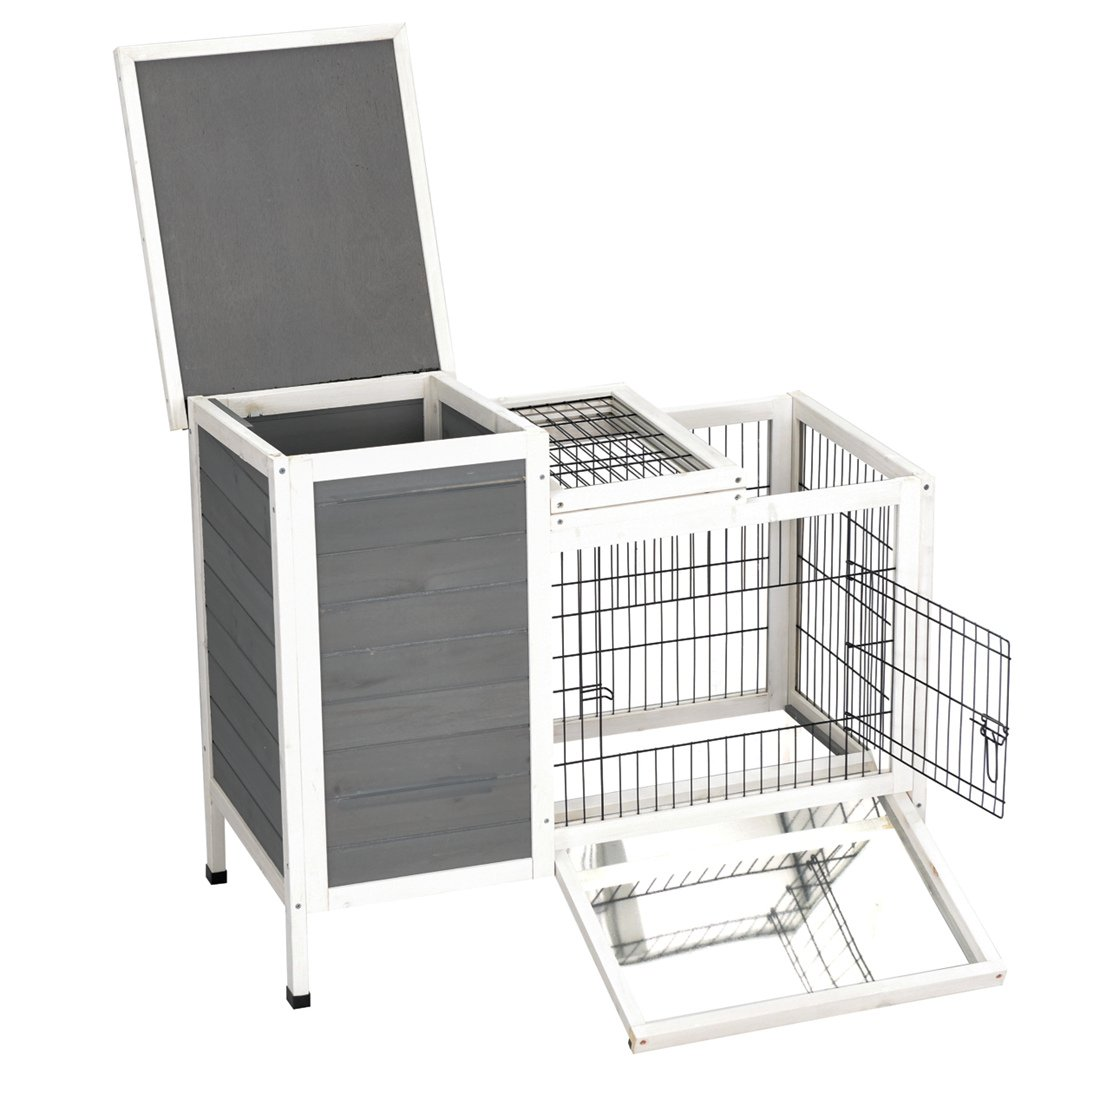 Good Life Wooden Outdoor Bunny Hutch Rabbit Cage Guinea Pig Coop PET House Gray & White Color PET502 by GOOD LIFE USA (Image #3)